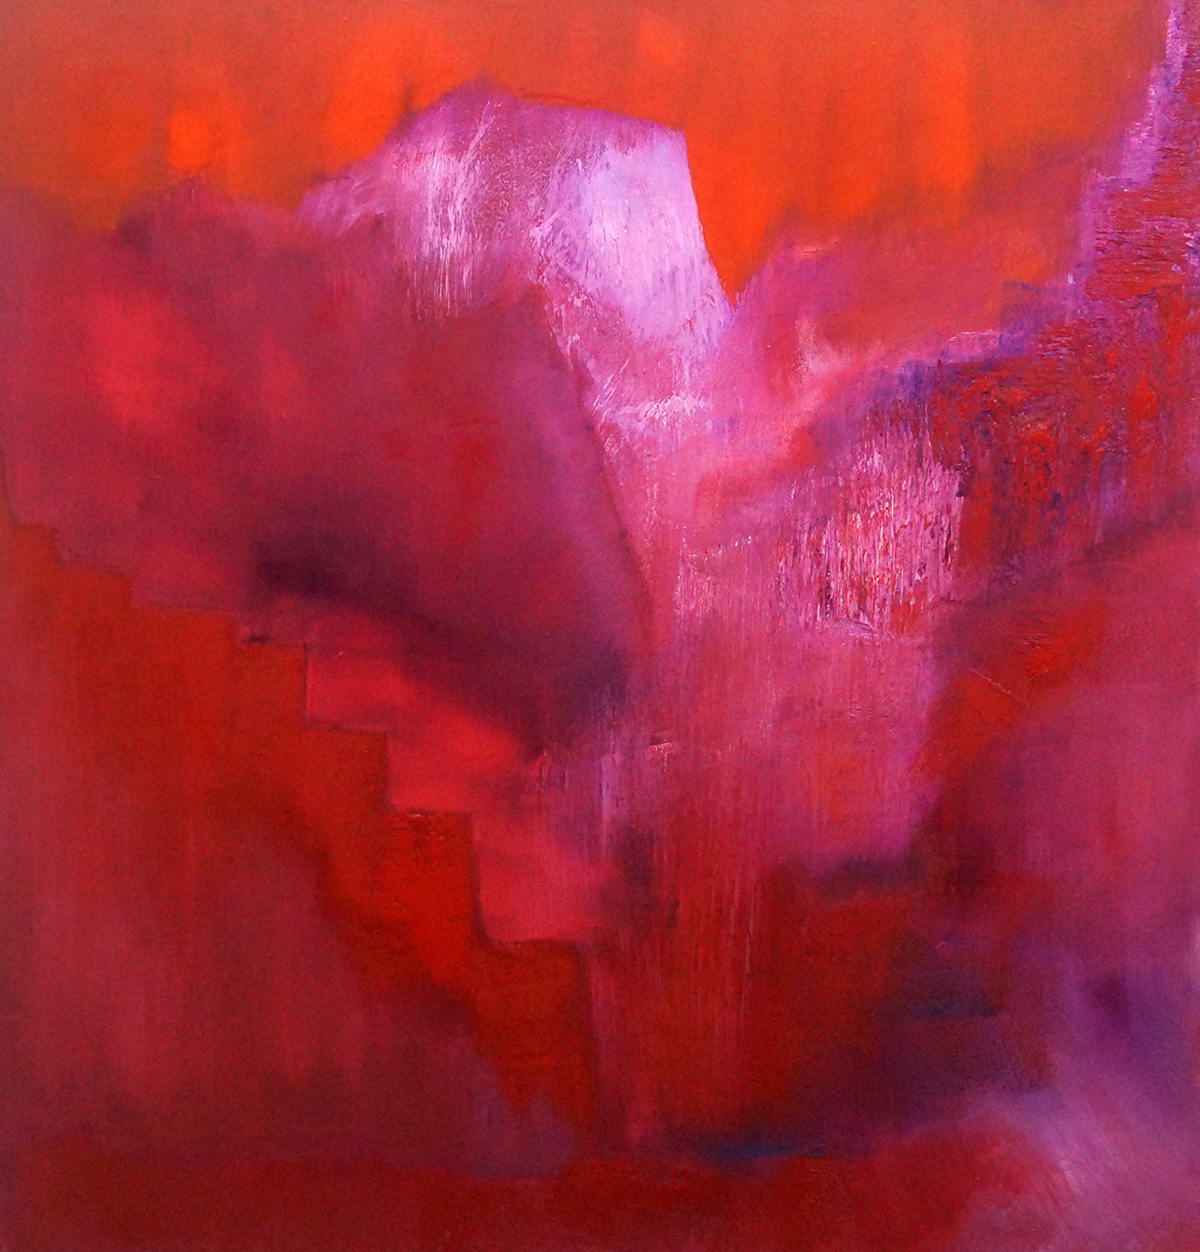 Landscape In Red - Oil on Canvas - 91.5cm x 91.5cm